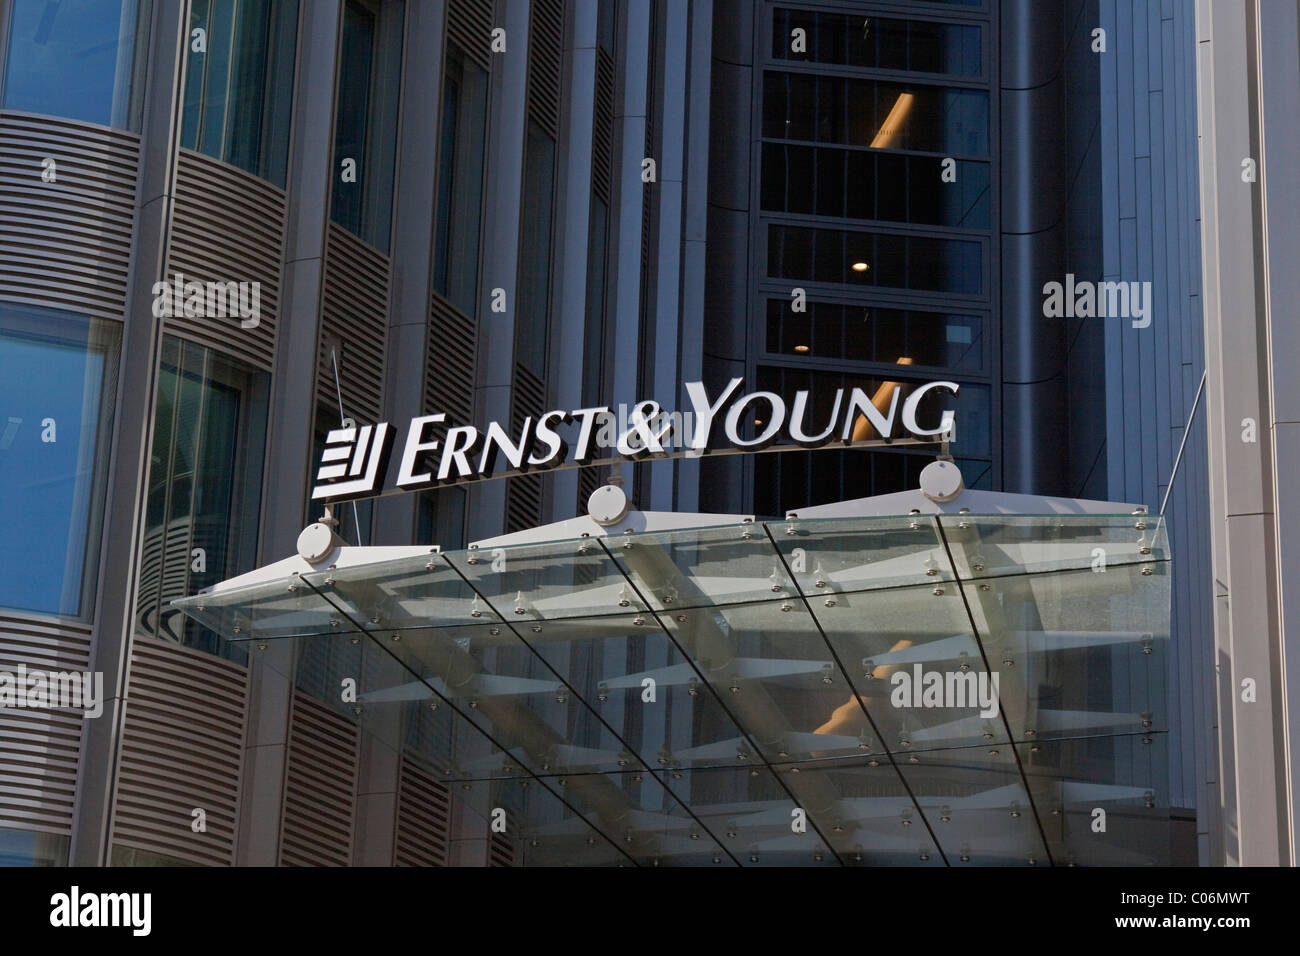 Ernst & Young auditor, accountancy and professional services firm, Berlin office, Friedrichstrasse, Germany, - Stock Image